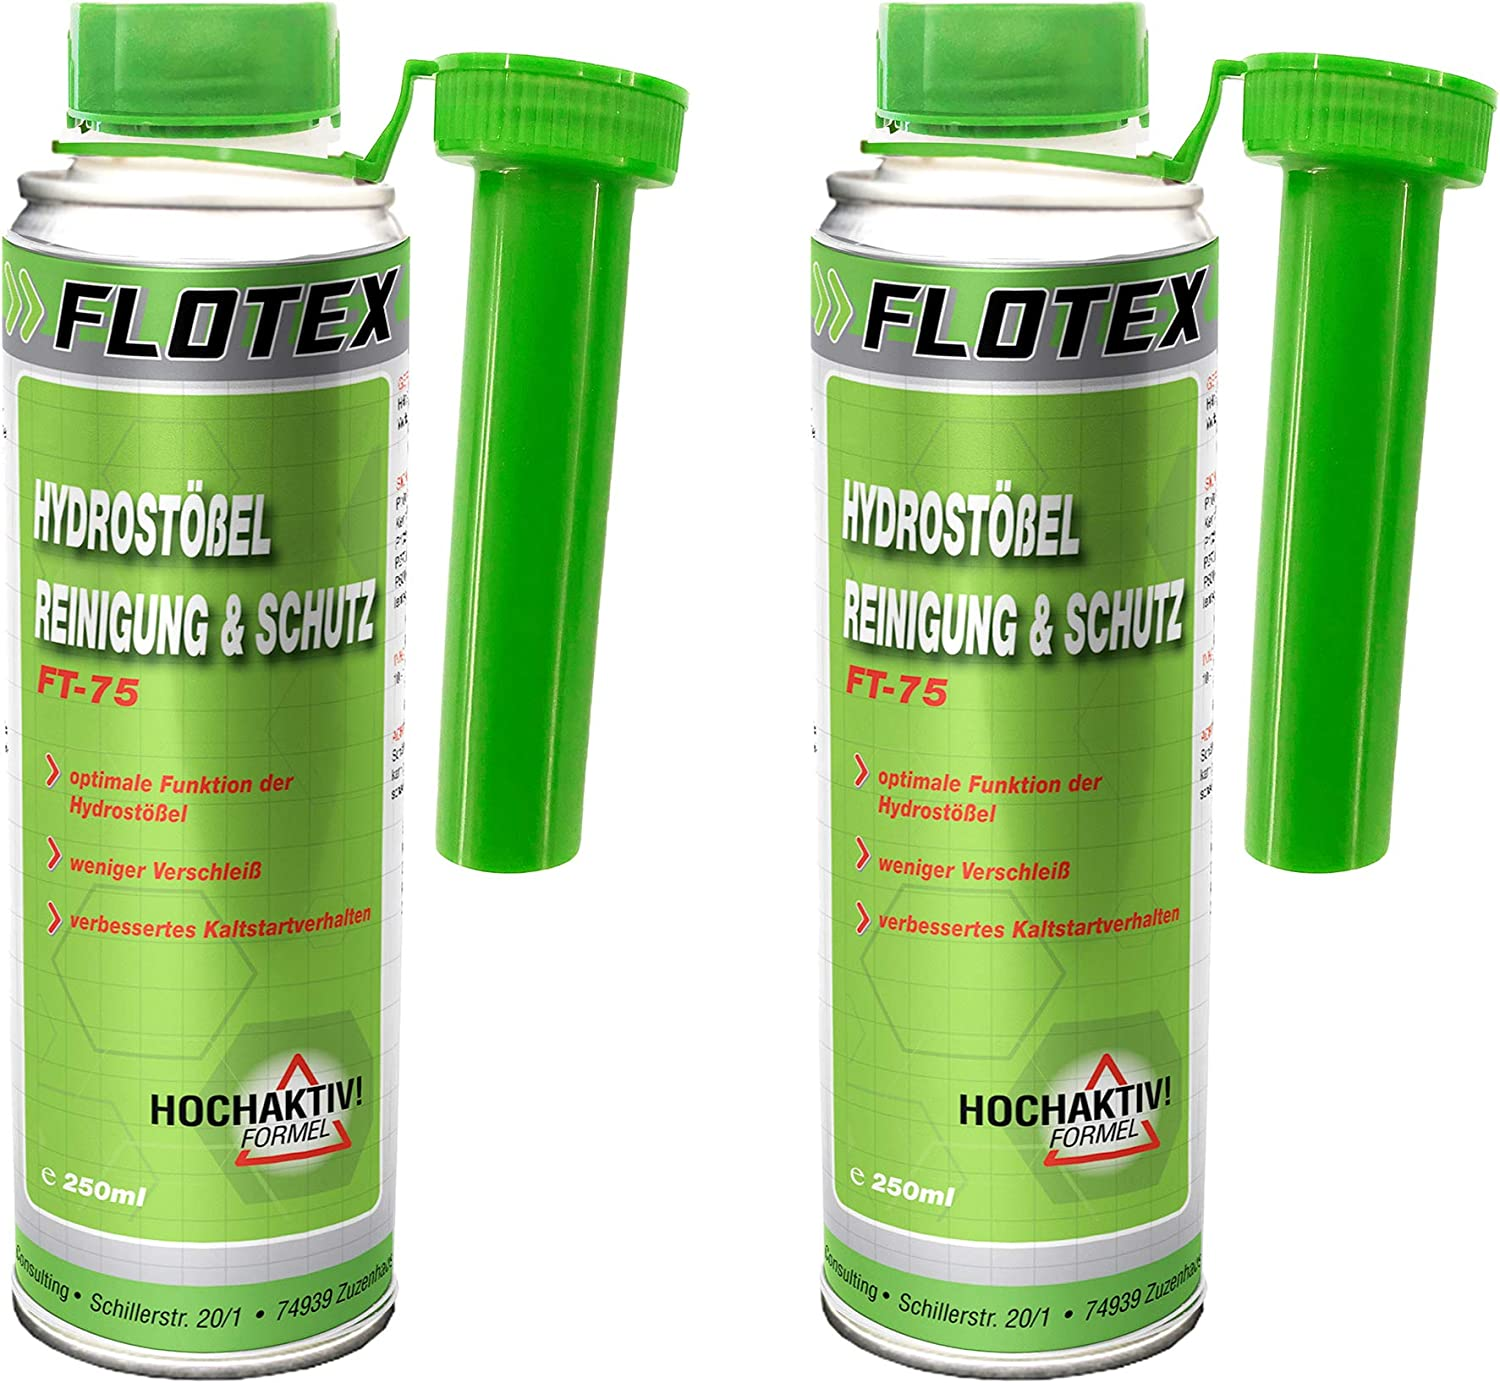 Flotex Hydro Muddler Cleaning Protection 2 X 250 Ml Additive Cleans Valve Pestle Auto